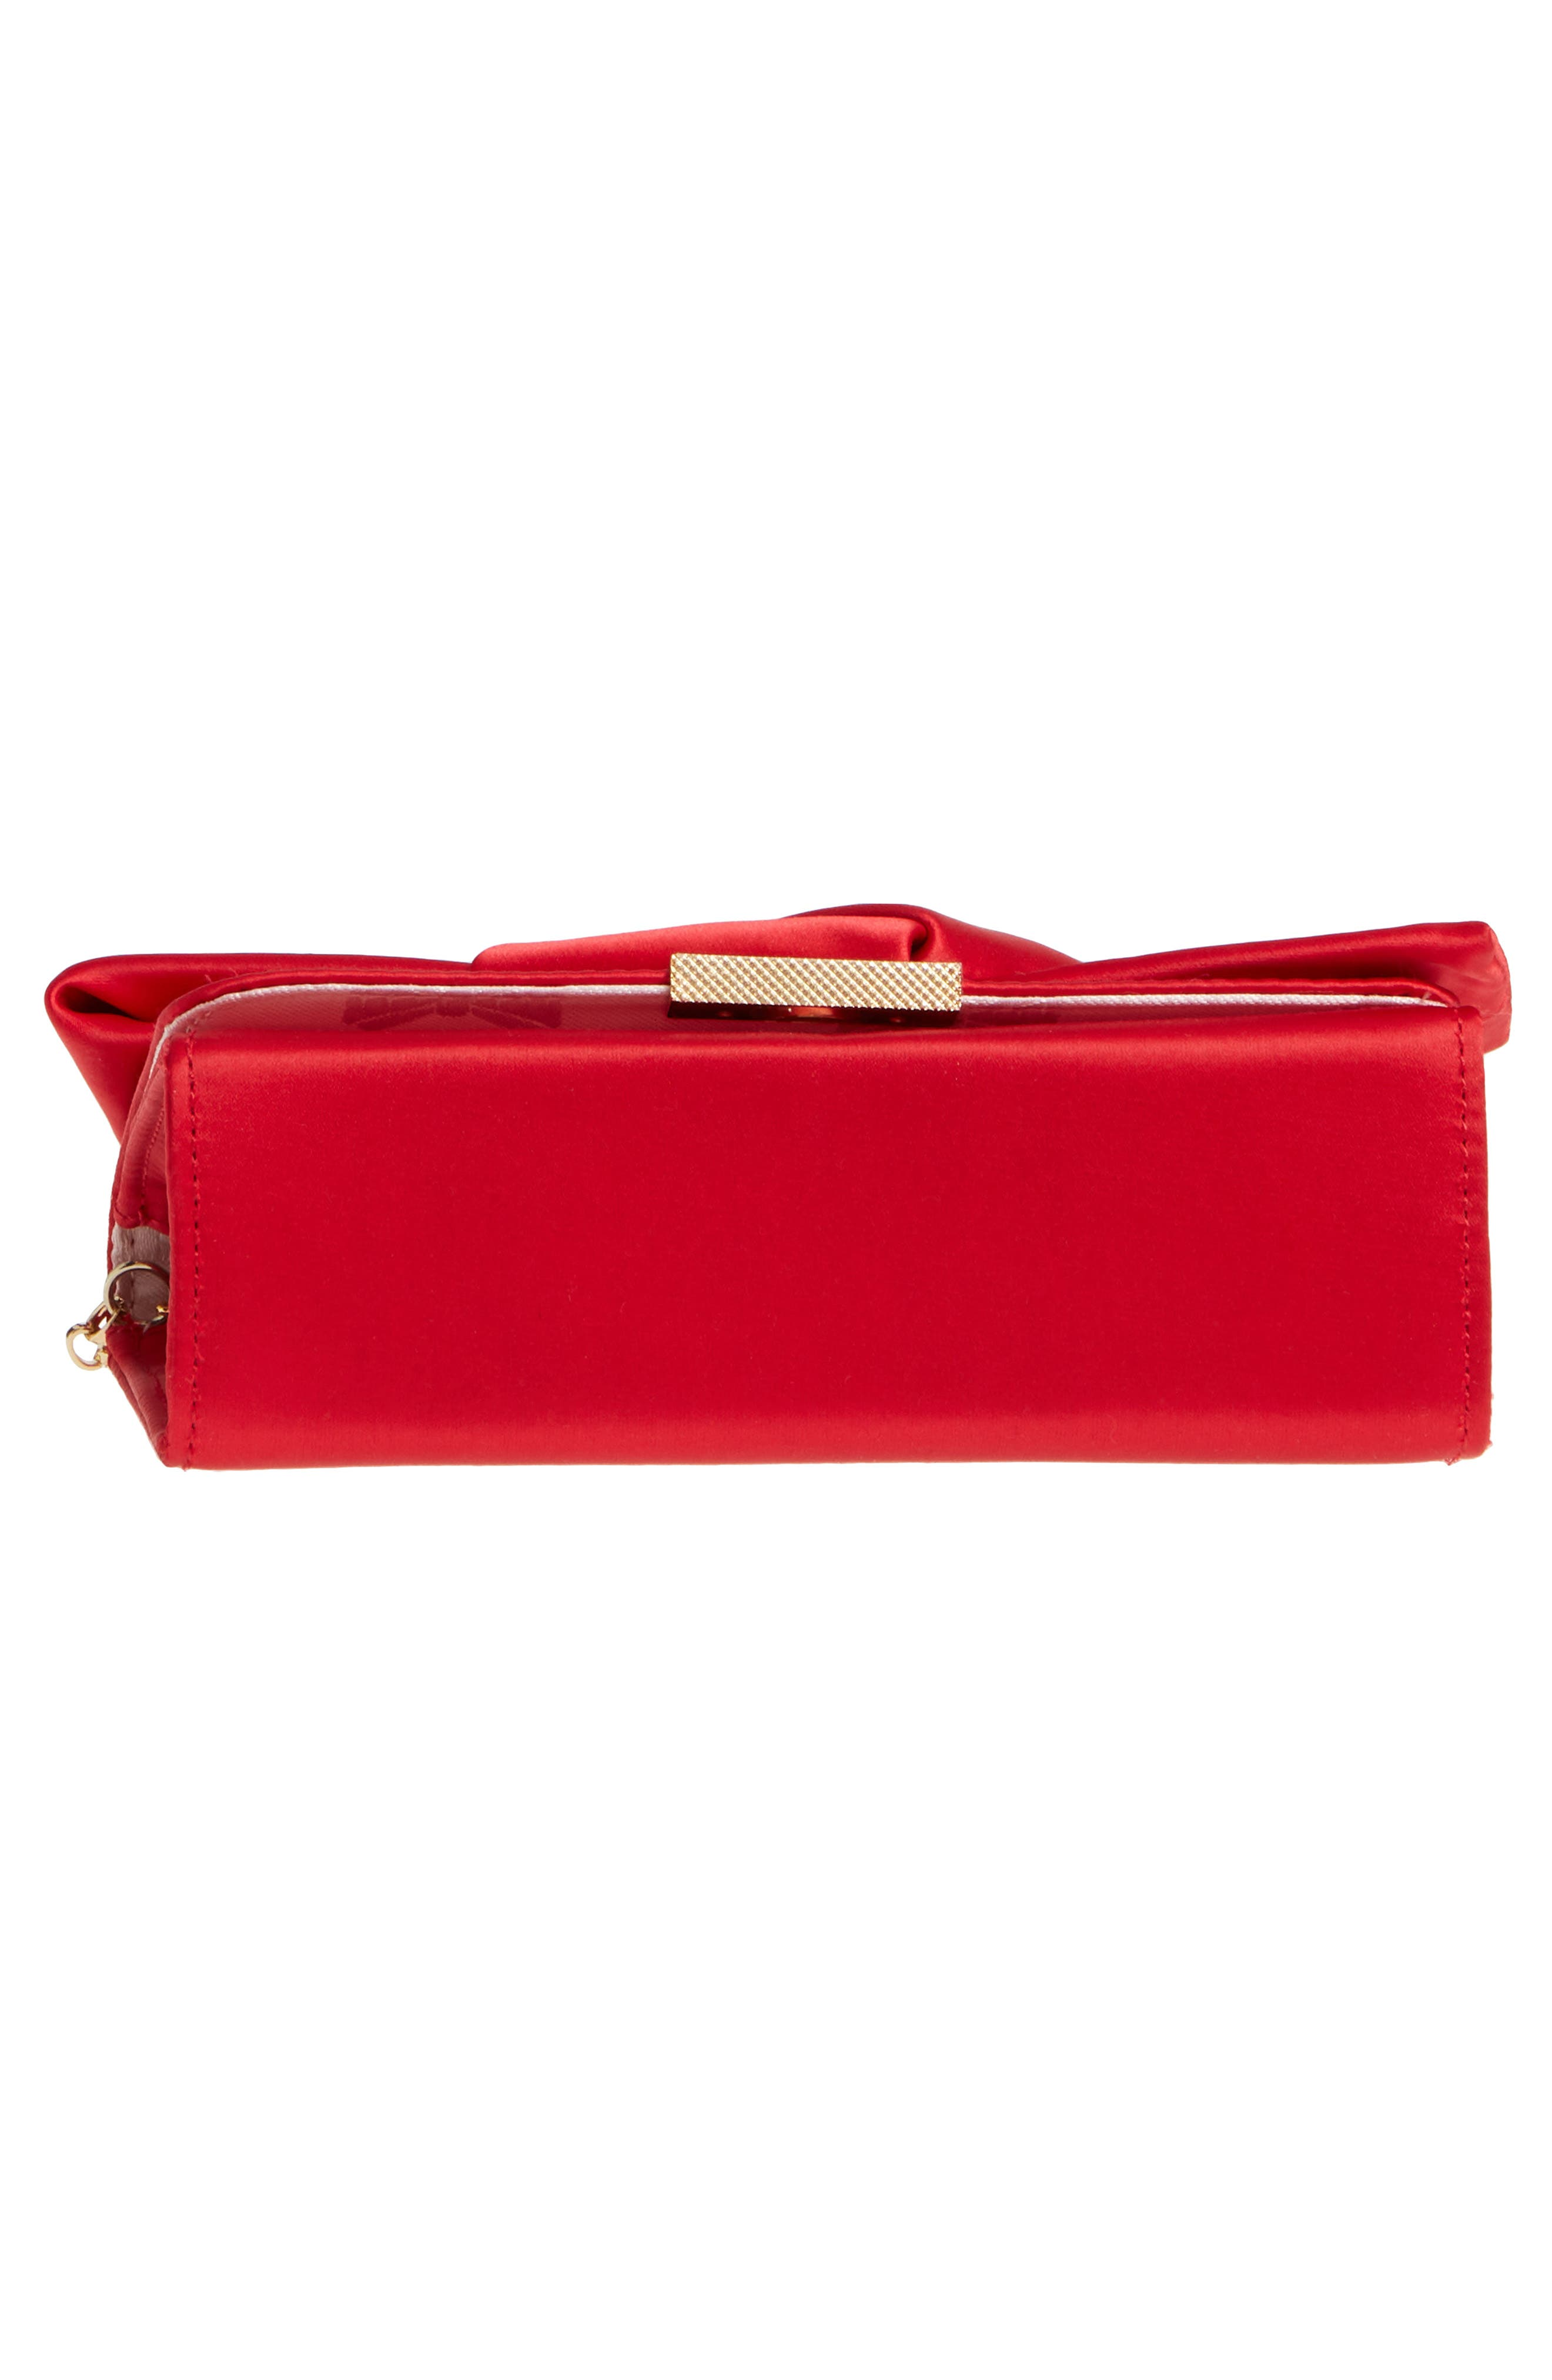 Fefee Satin Knotted Bow Clutch,                             Alternate thumbnail 6, color,                             Bright Red